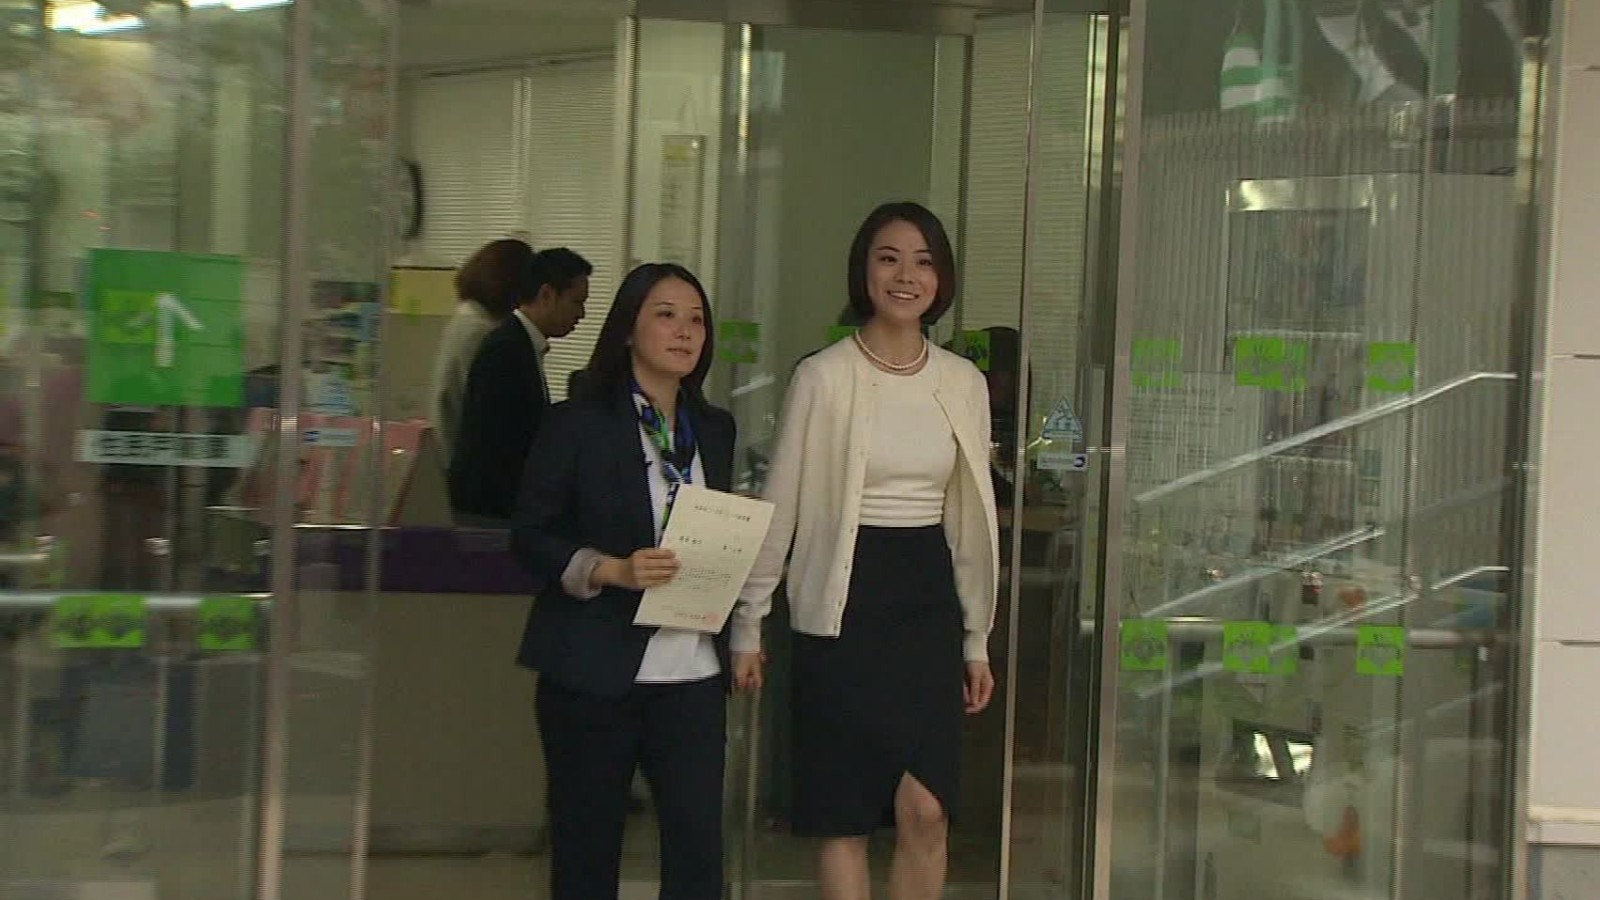 First step for same-sex marriage in Japan - CNN Video